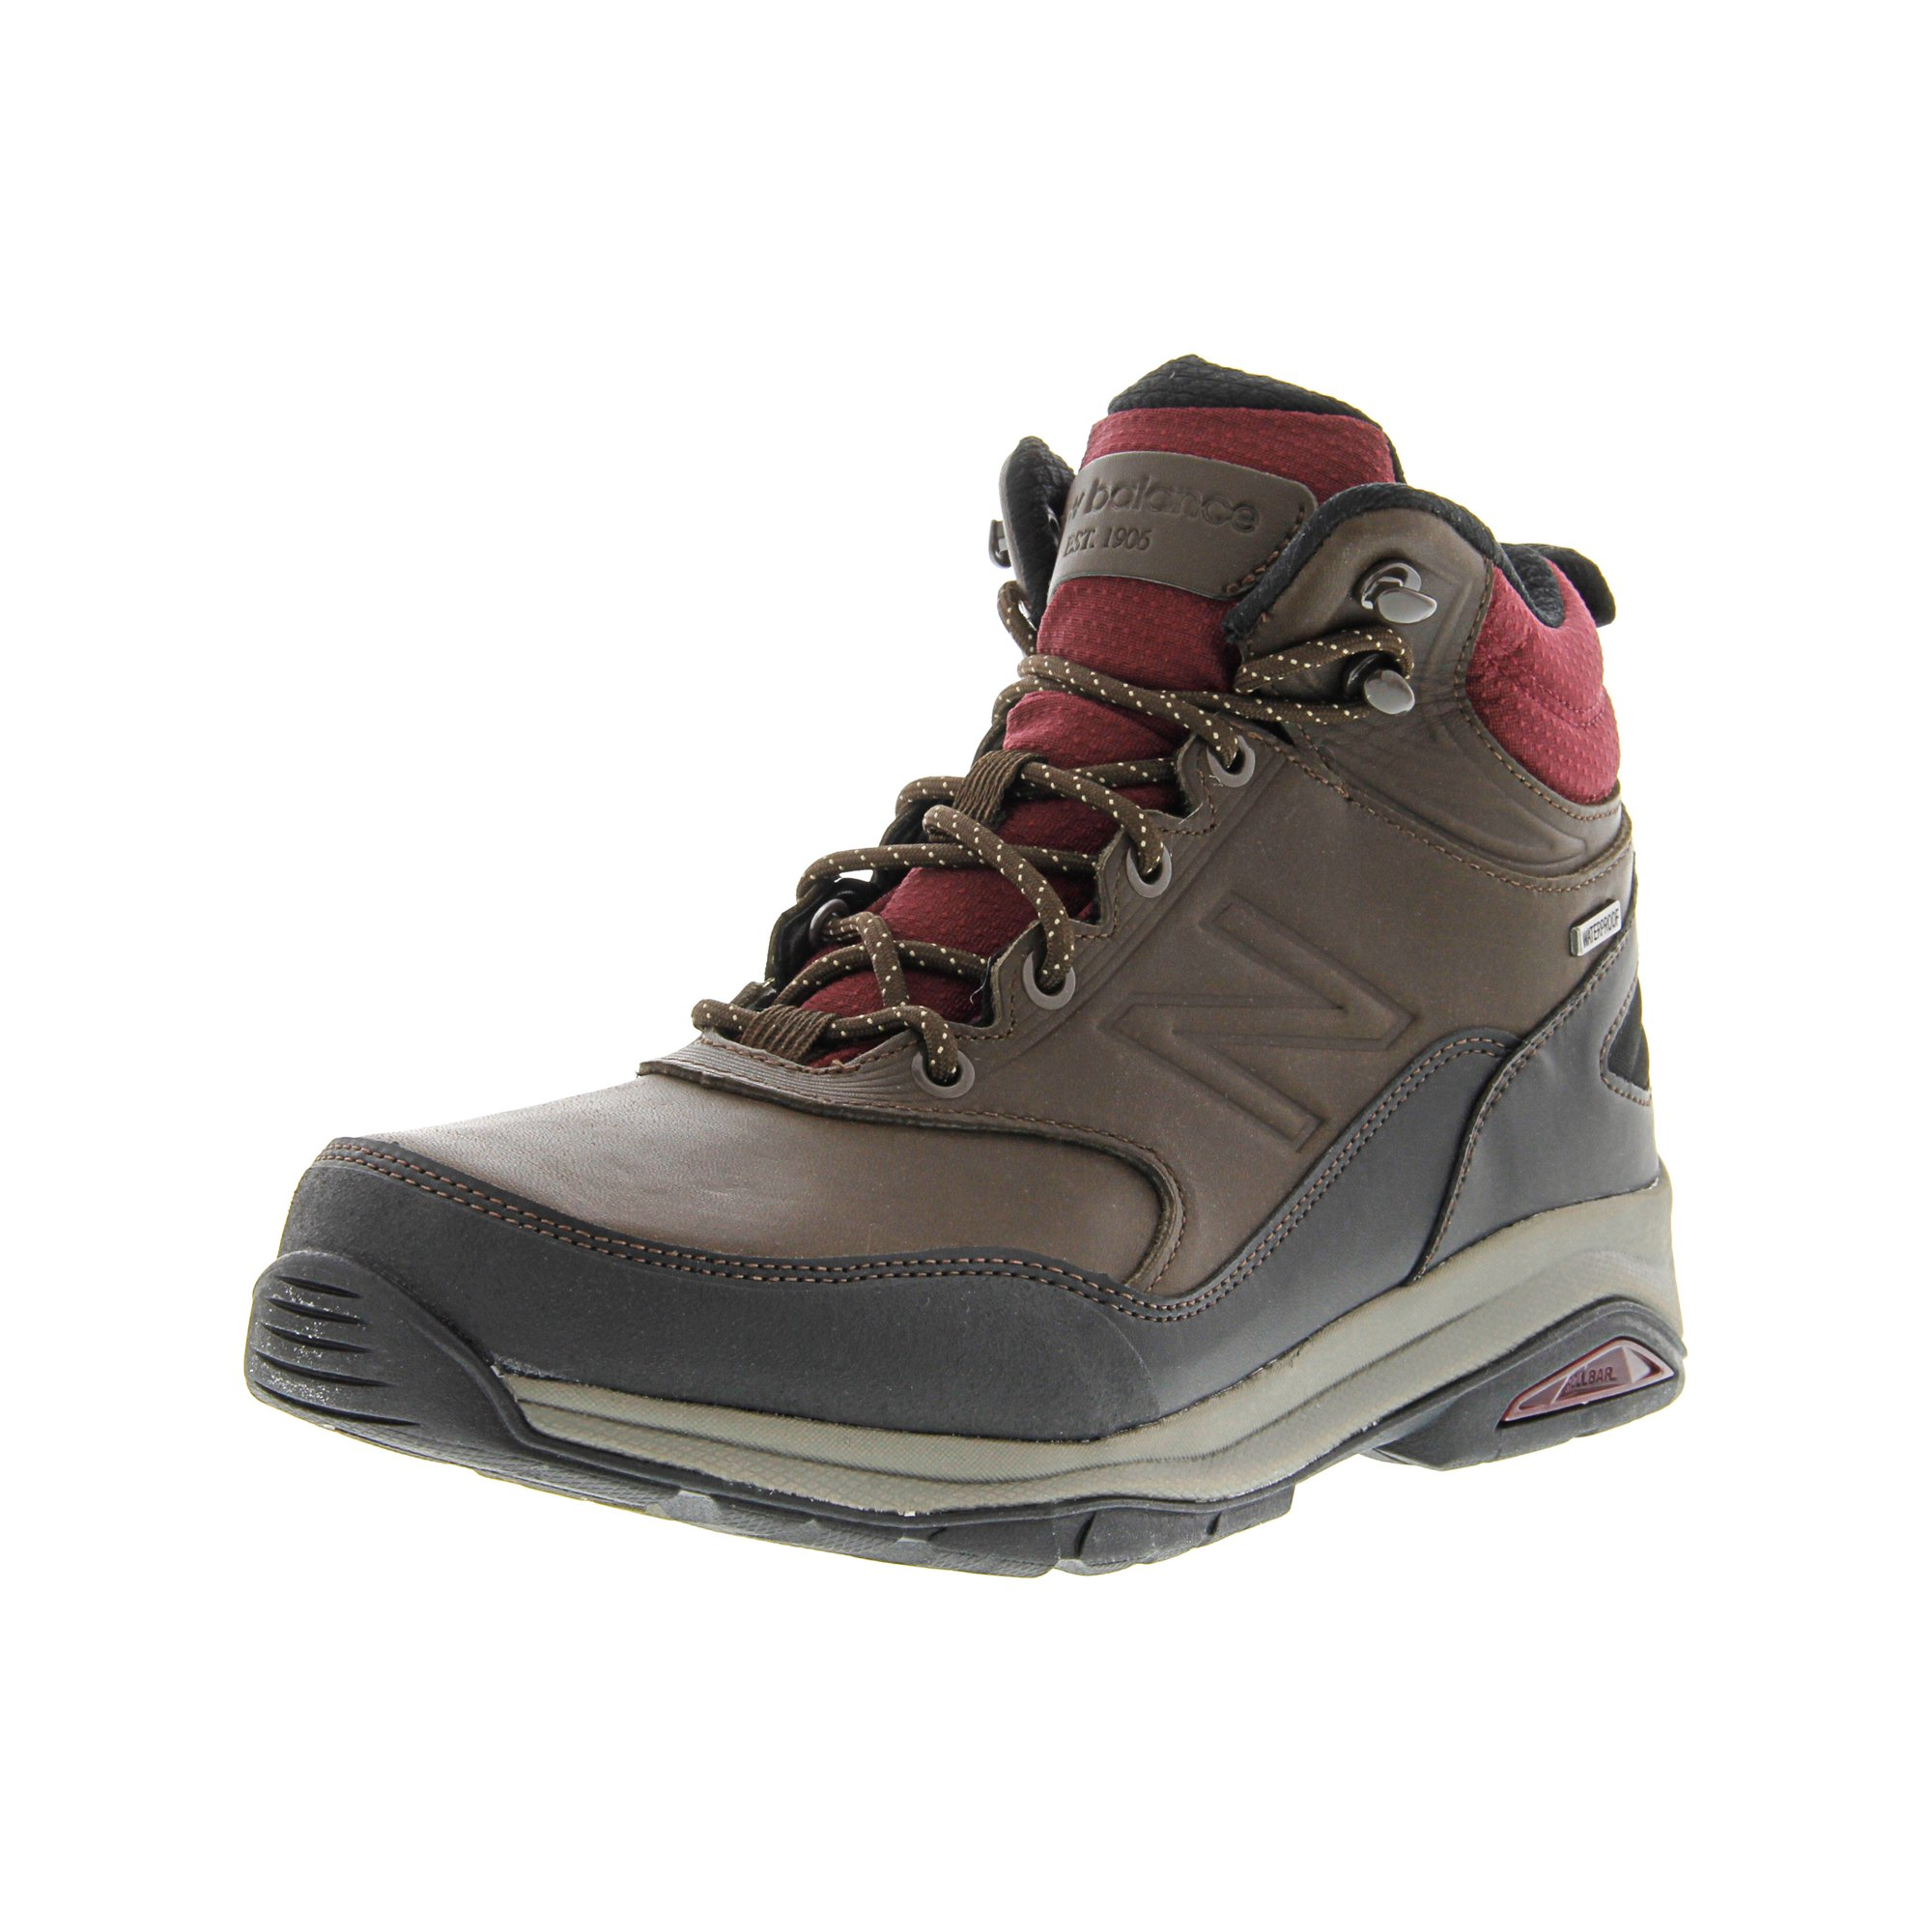 b4813682f34f2 New Balance Women's Ww1400 Tg Ankle-High Leather Backpacking Boot - 9M |  Walmart Canada